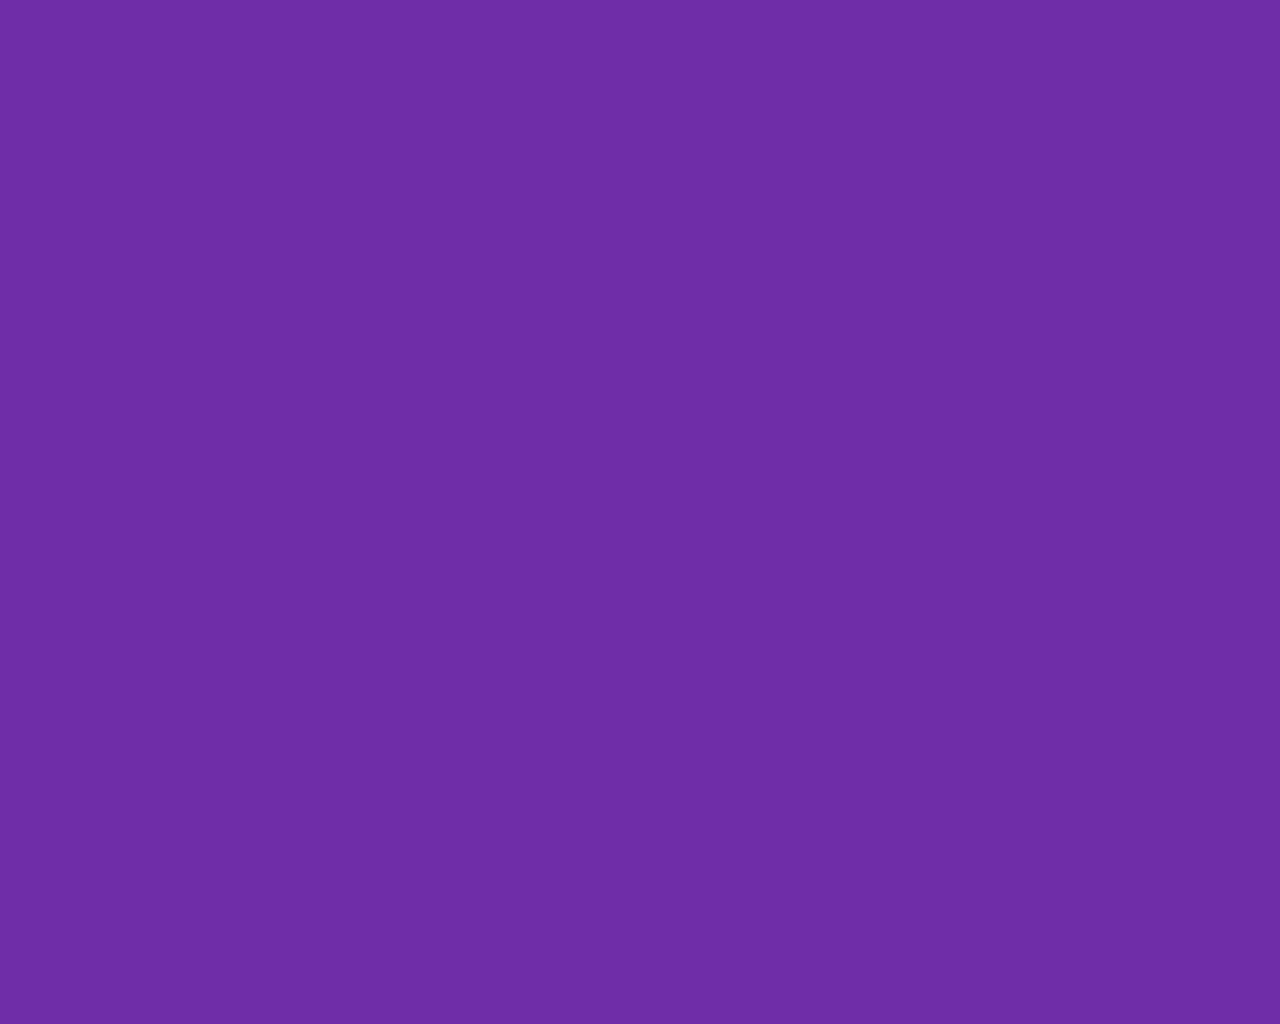 1280x1024 Grape Solid Color Background